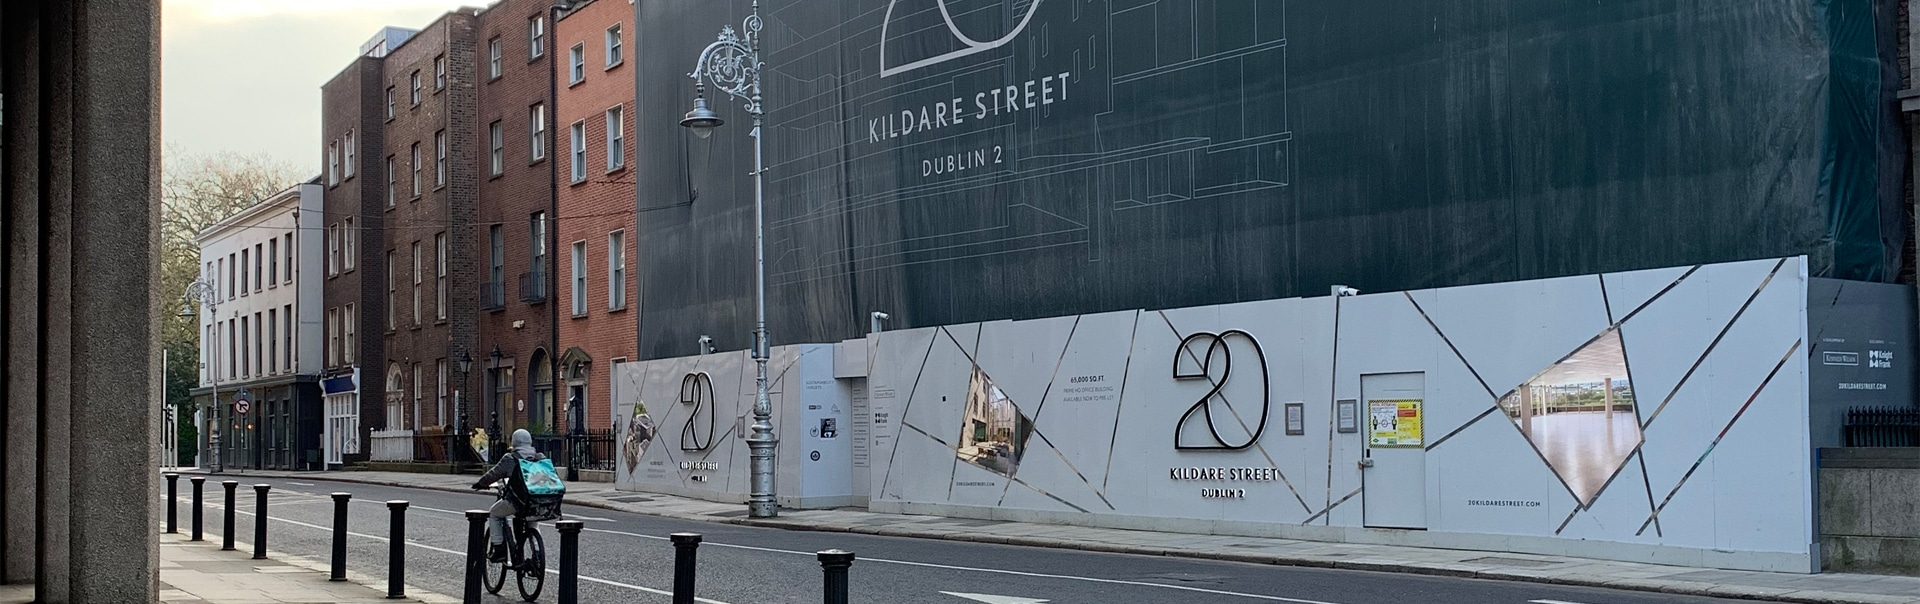 A Deliveroo rider passes the hoarding at 20 Kildare Street